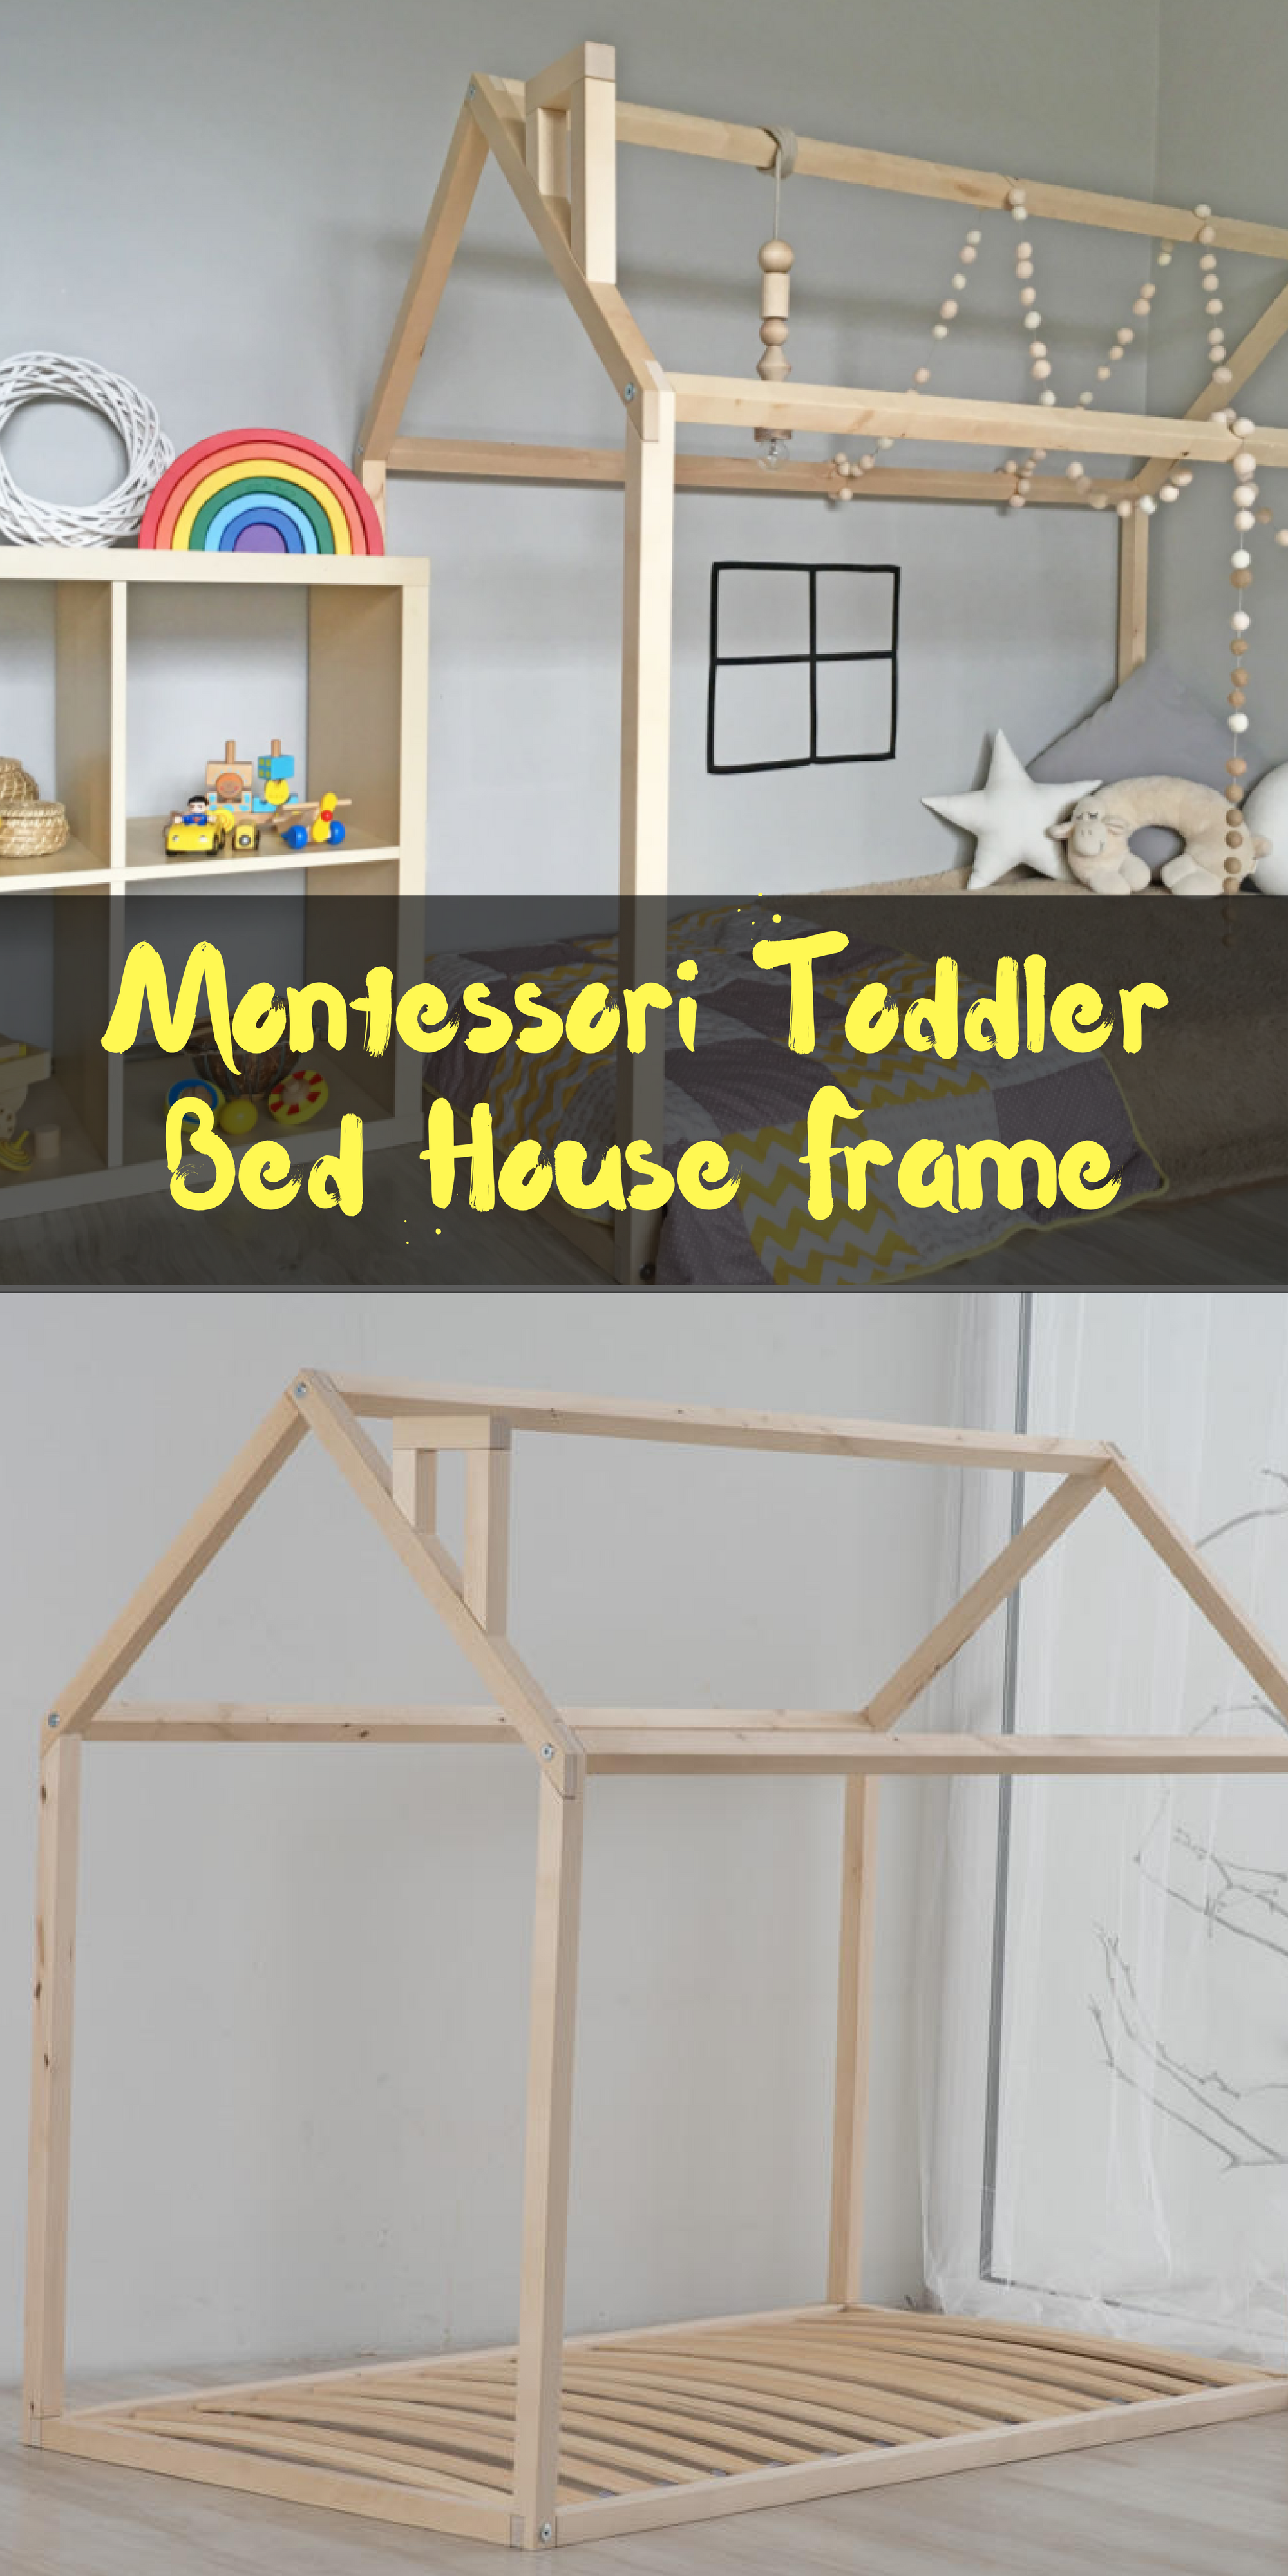 montessori toddler bed house frame etsy toddler bed house frame floor bed wood bed frame birch wooden house playhouse cot wood house bed bedroom